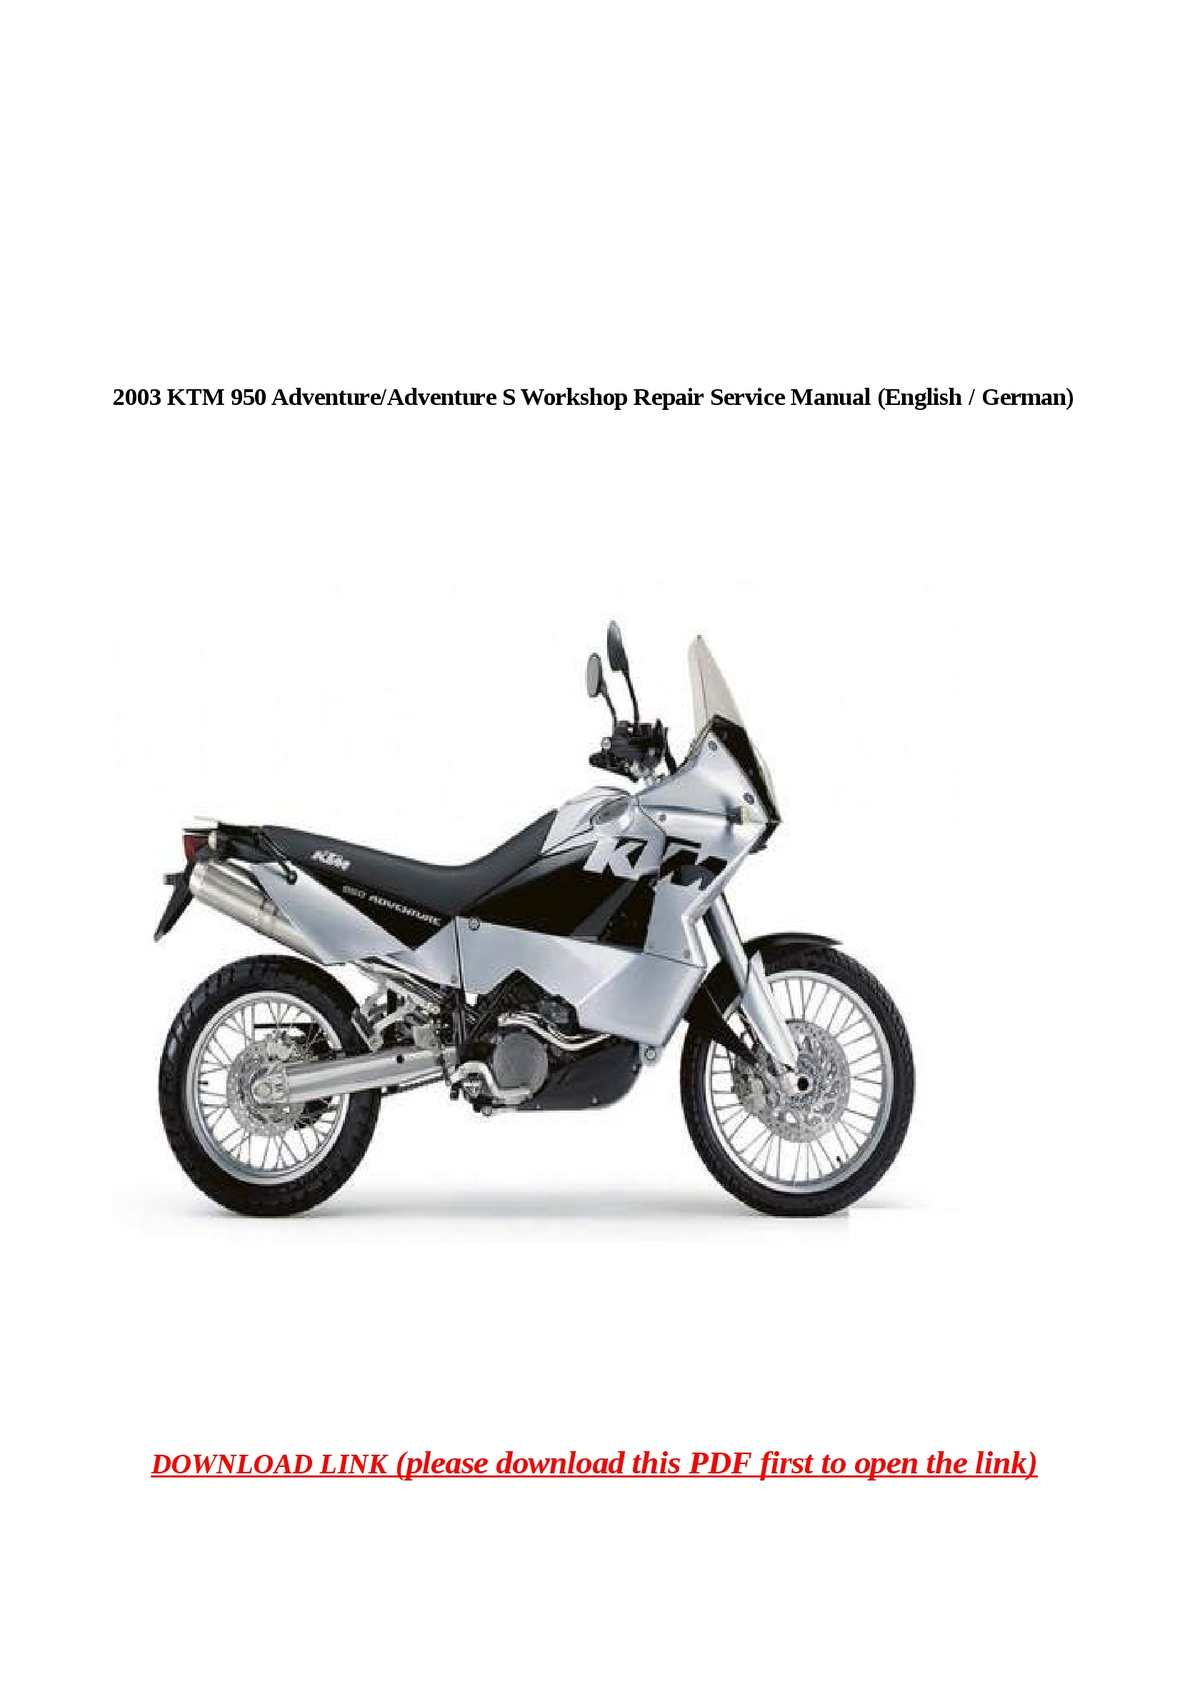 Ktm 950 Adventure Engine Full Service Repair Manual 2003